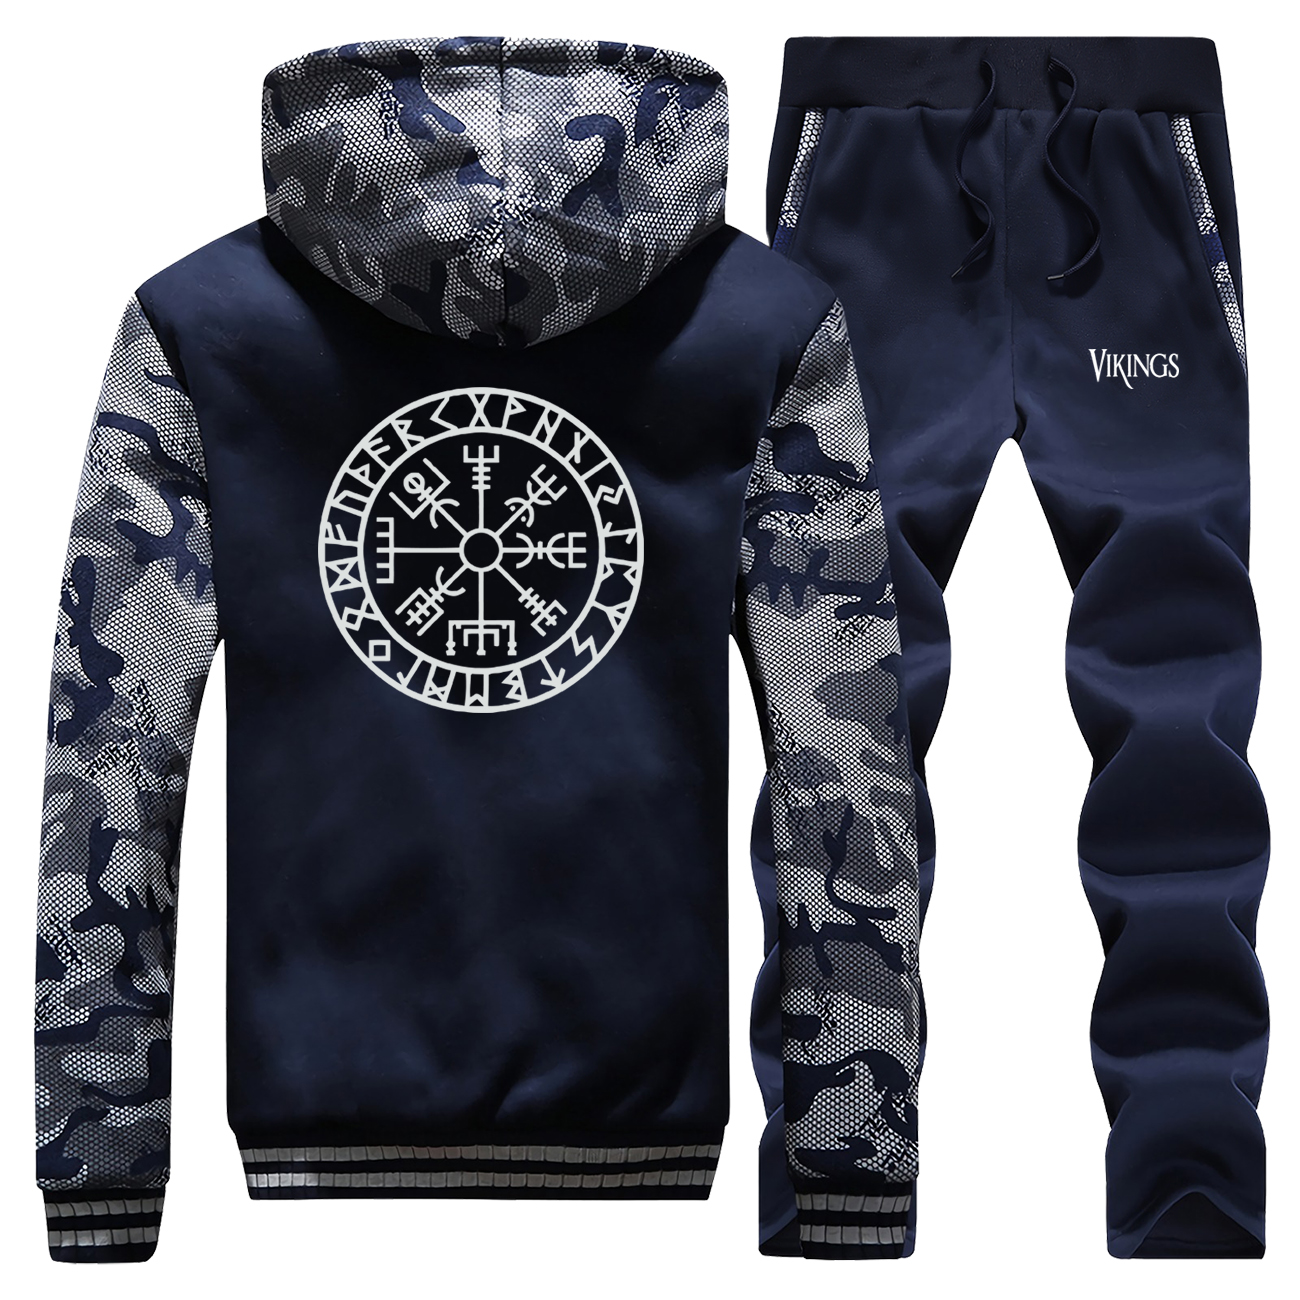 Vikings Print Thick Male Set TV Show The Viking Printed Camo Jacket Sets Fashion Winter Streetwear Fleece Warm Men's Sports Suit